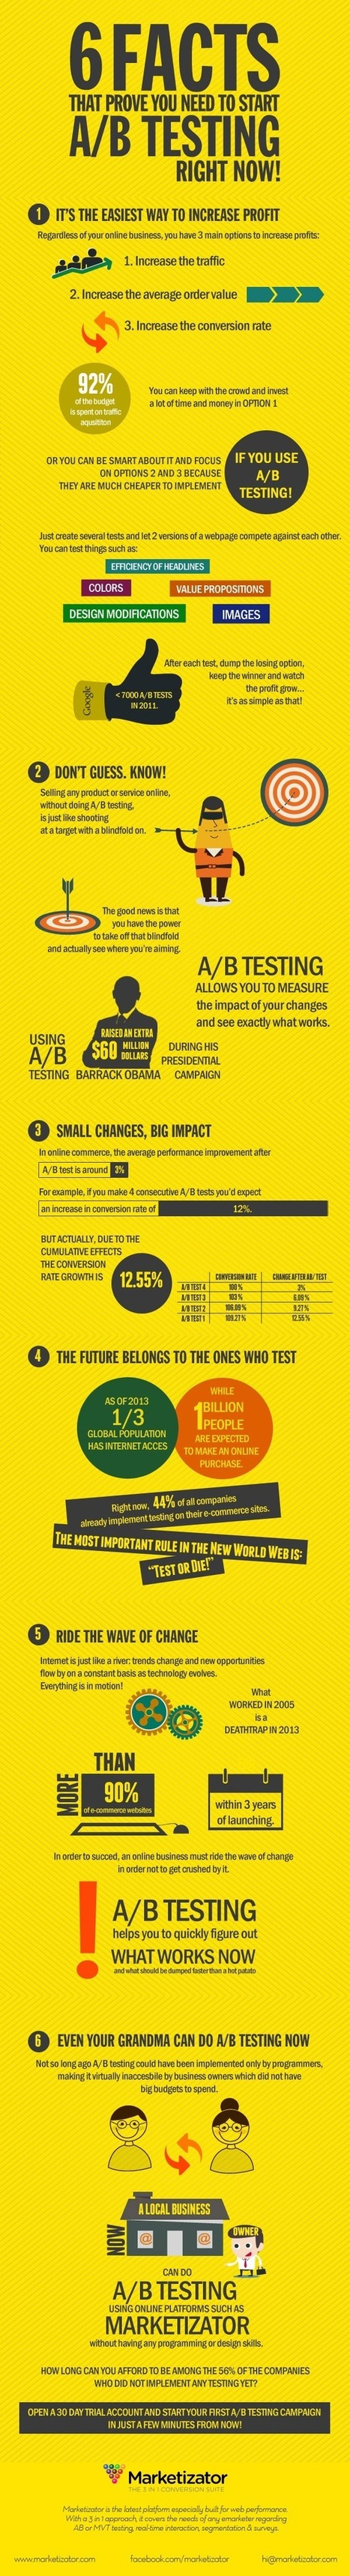 6 facts that prove you need start A/B testing right now | Online testing | Scoop.it